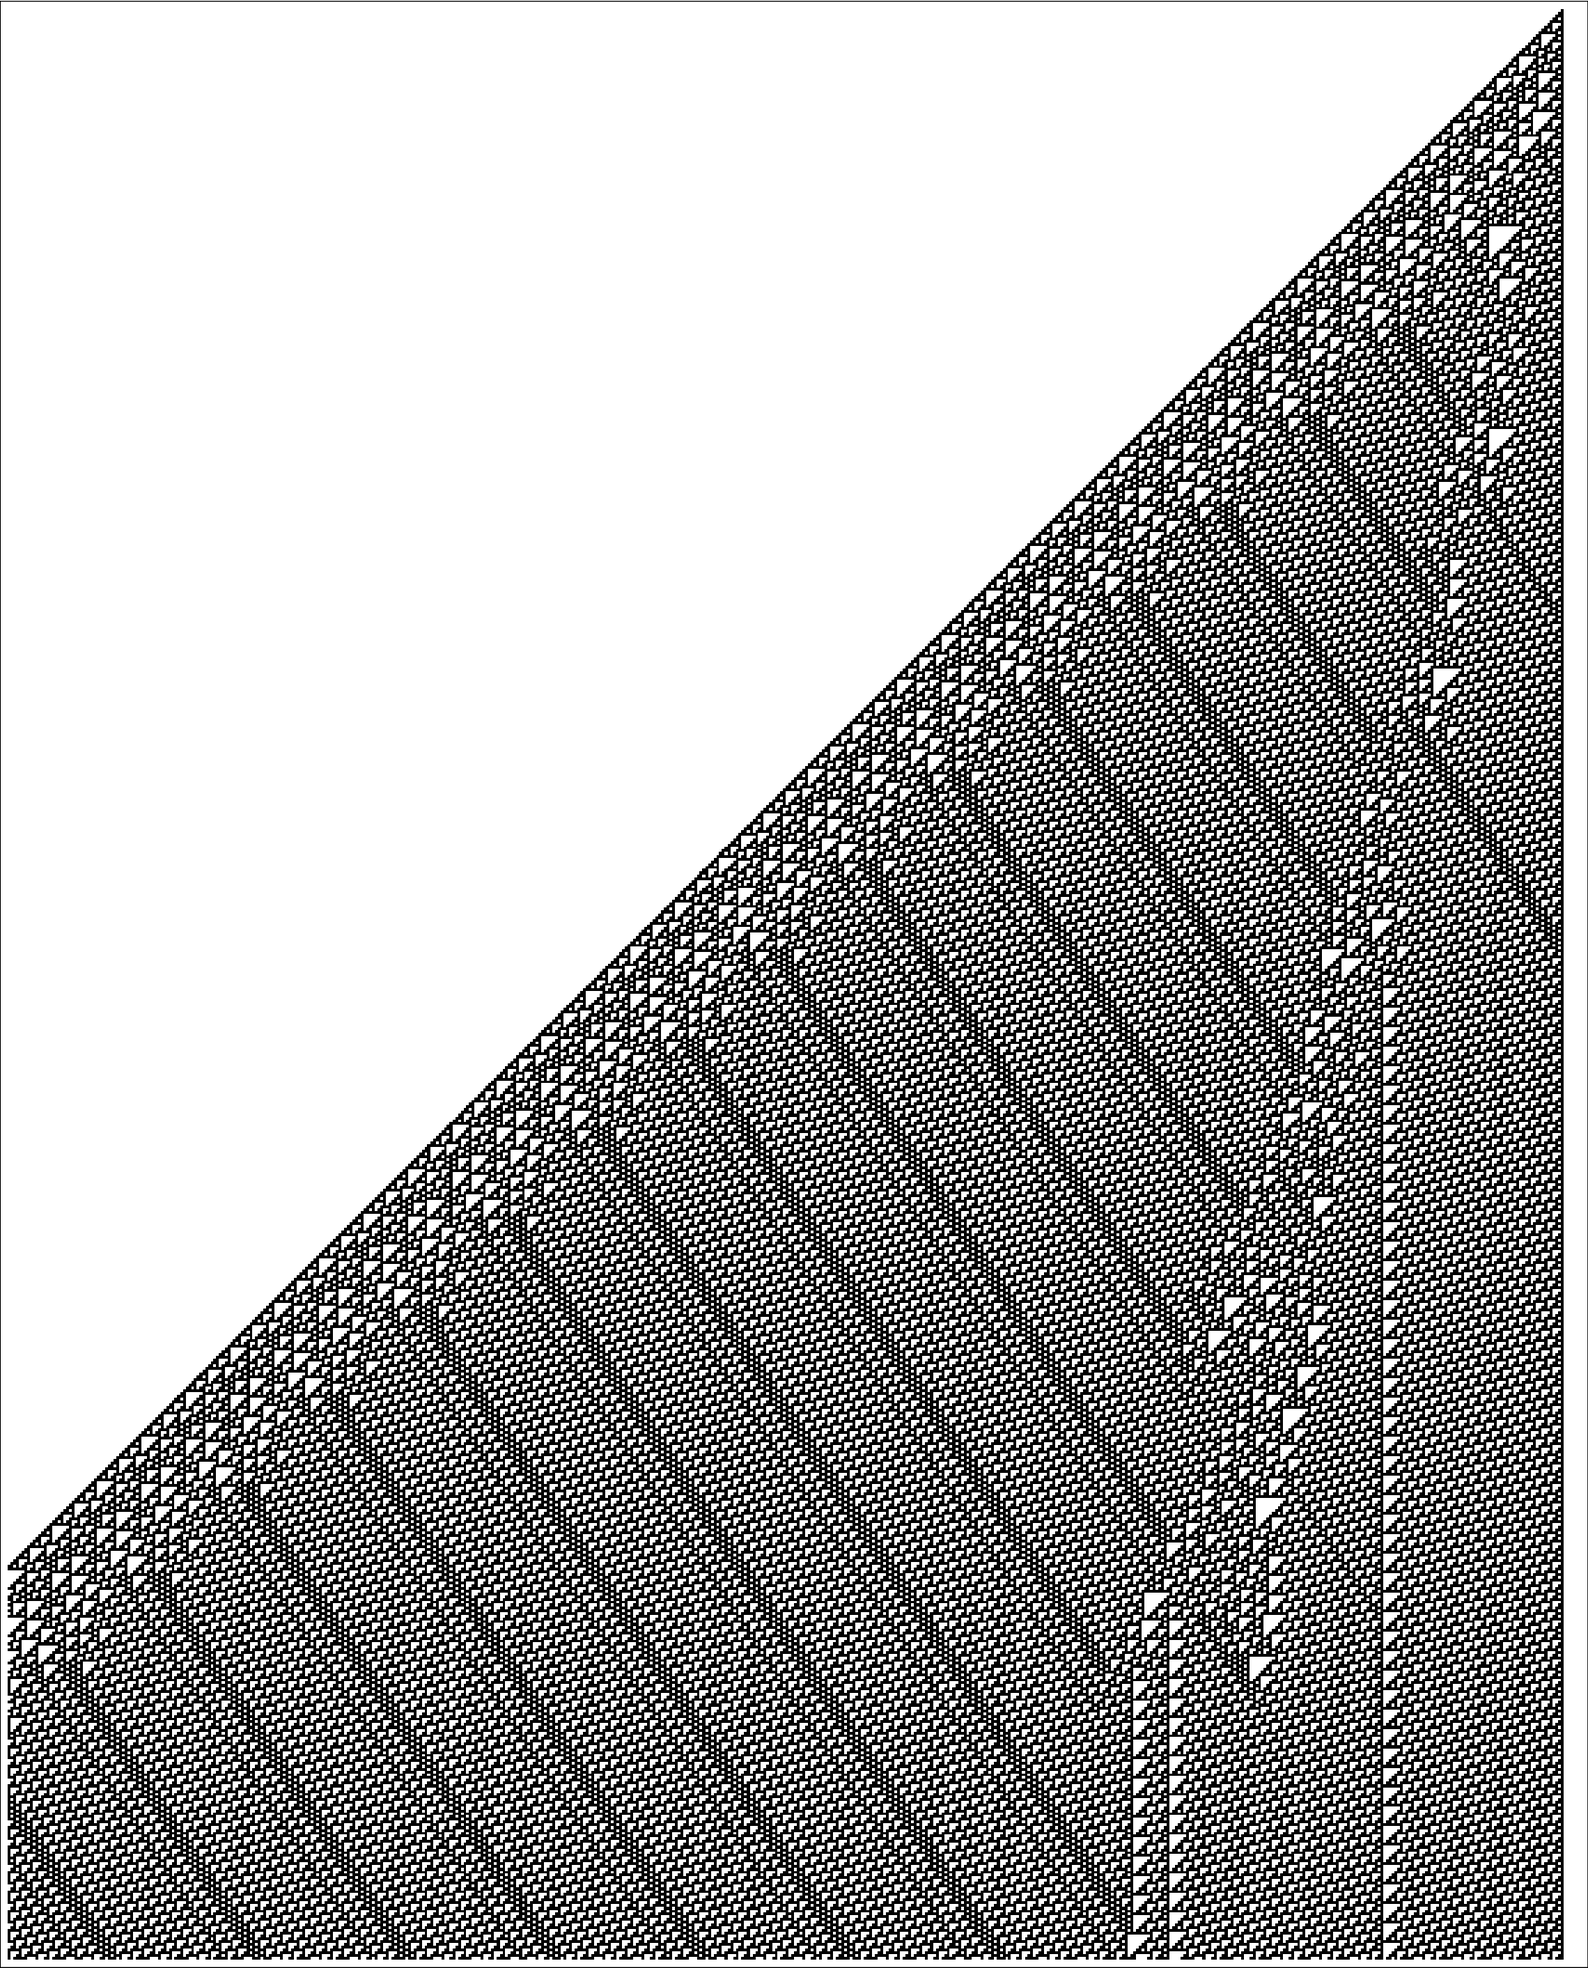 Breakdown of unique cellular automaton, continued